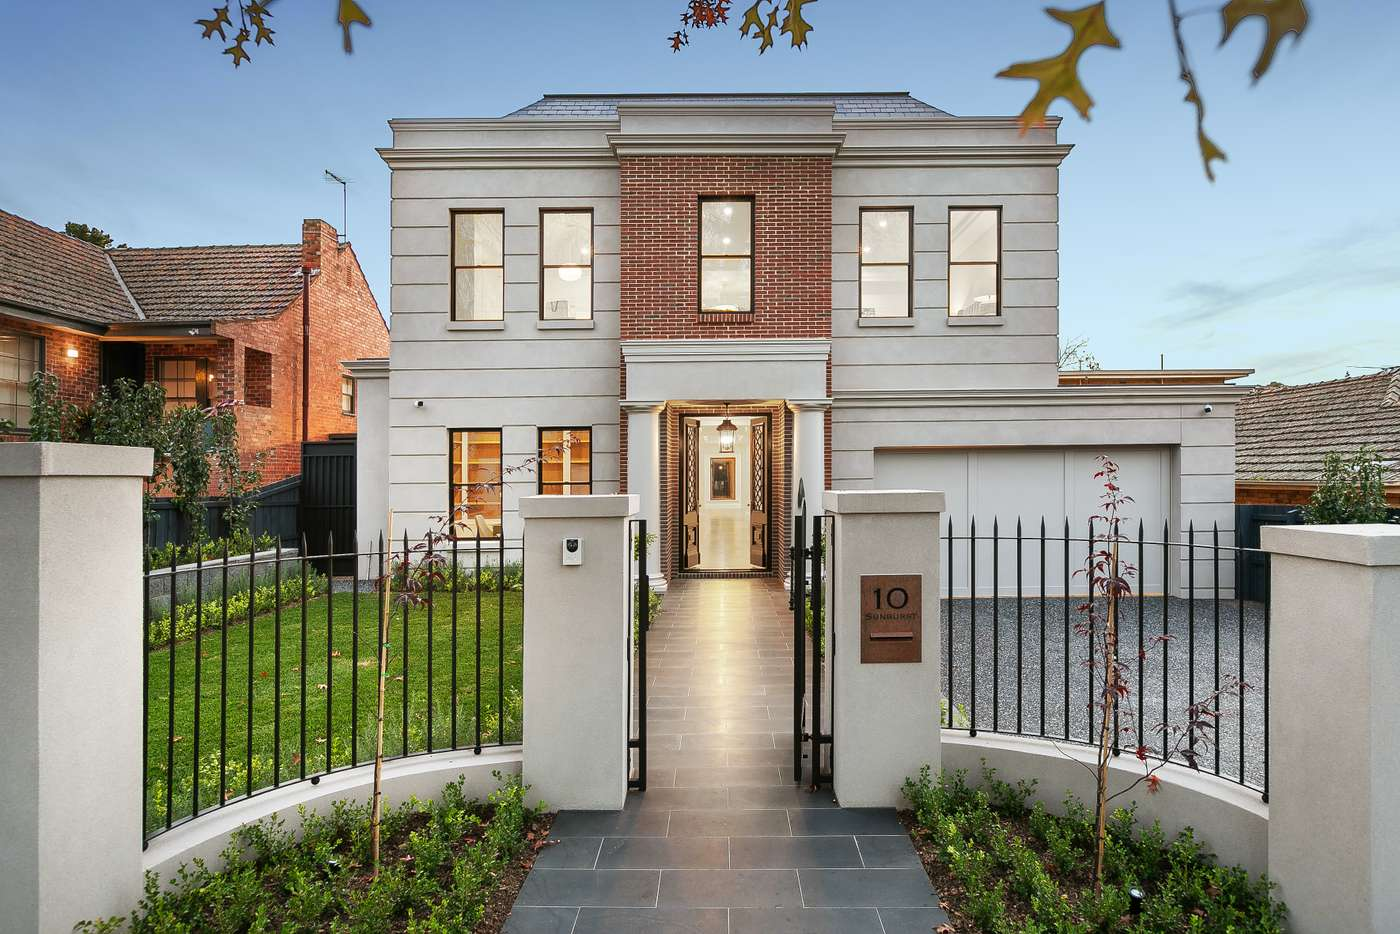 Main view of Homely house listing, 10 Sunburst Avenue, Balwyn North VIC 3104